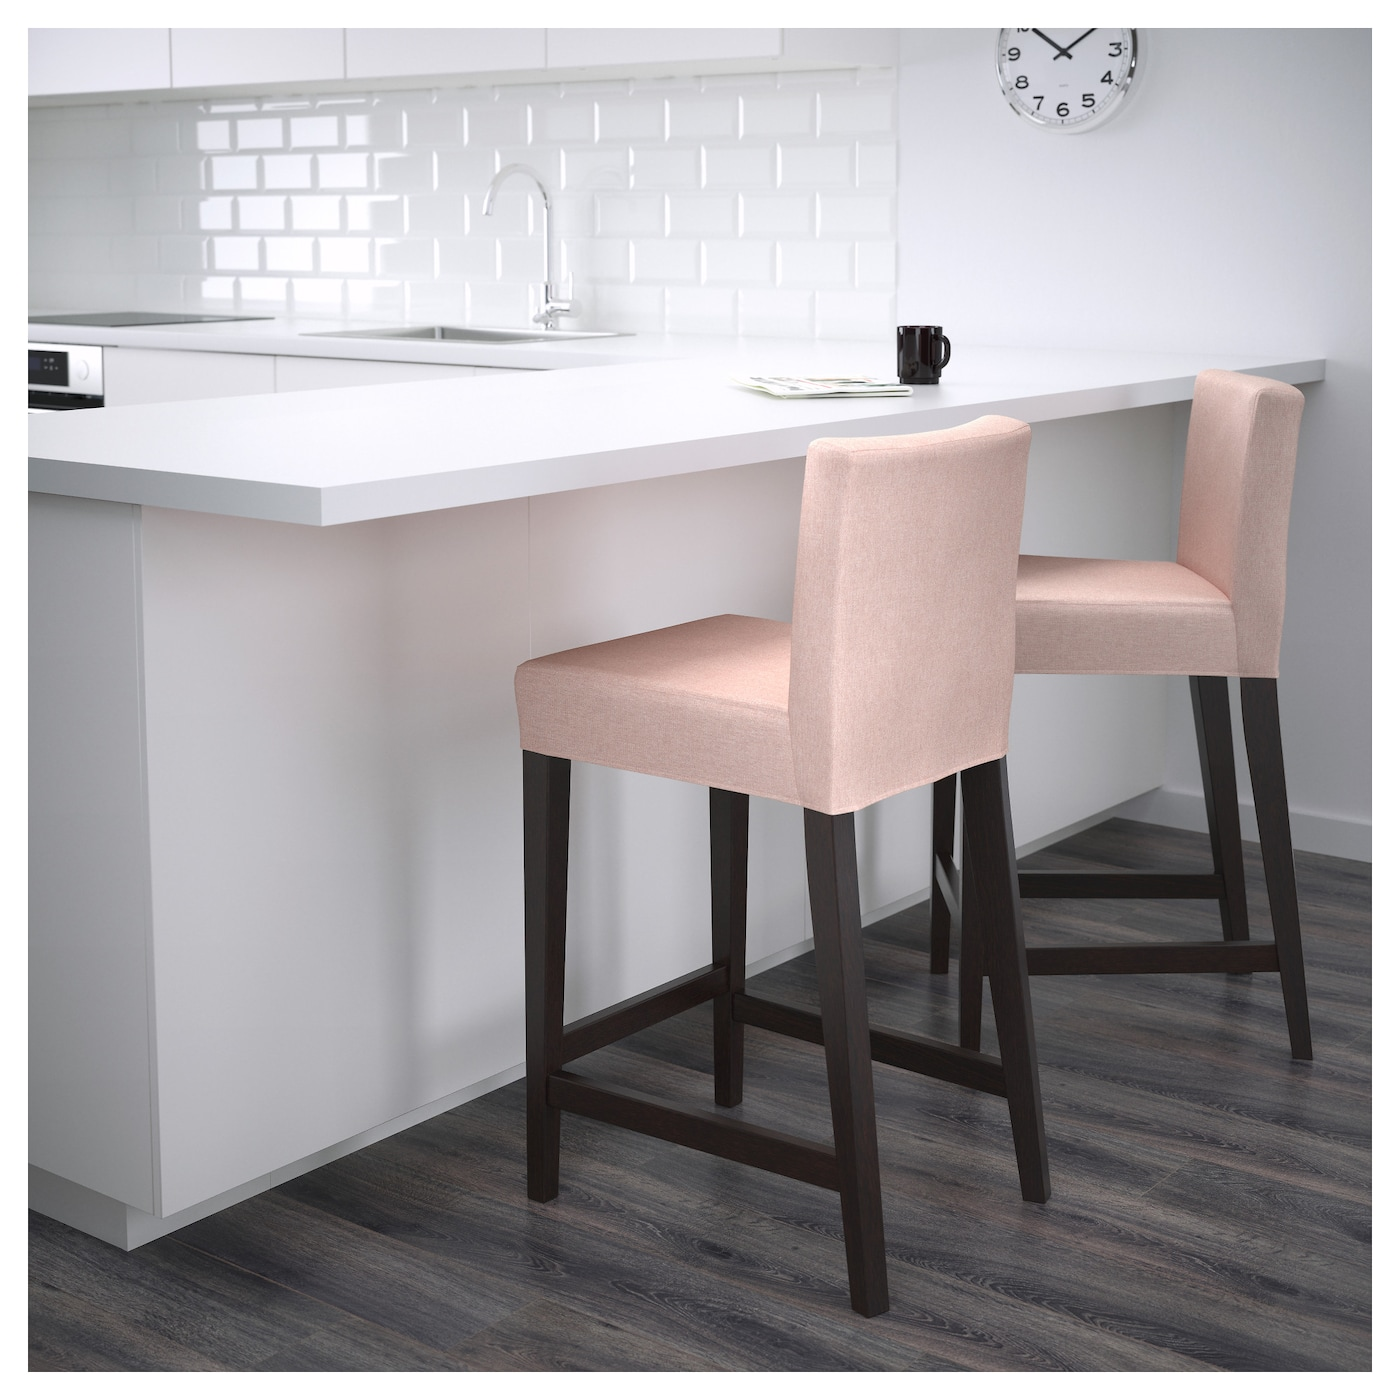 HENRIKSDAL Bar stool with backrest Brown blackgunnared  : henriksdal bar stool with backrest brown black gunnared pale pink0503589pe632789s5 from www.ikea.com size 2000 x 2000 jpeg 574kB